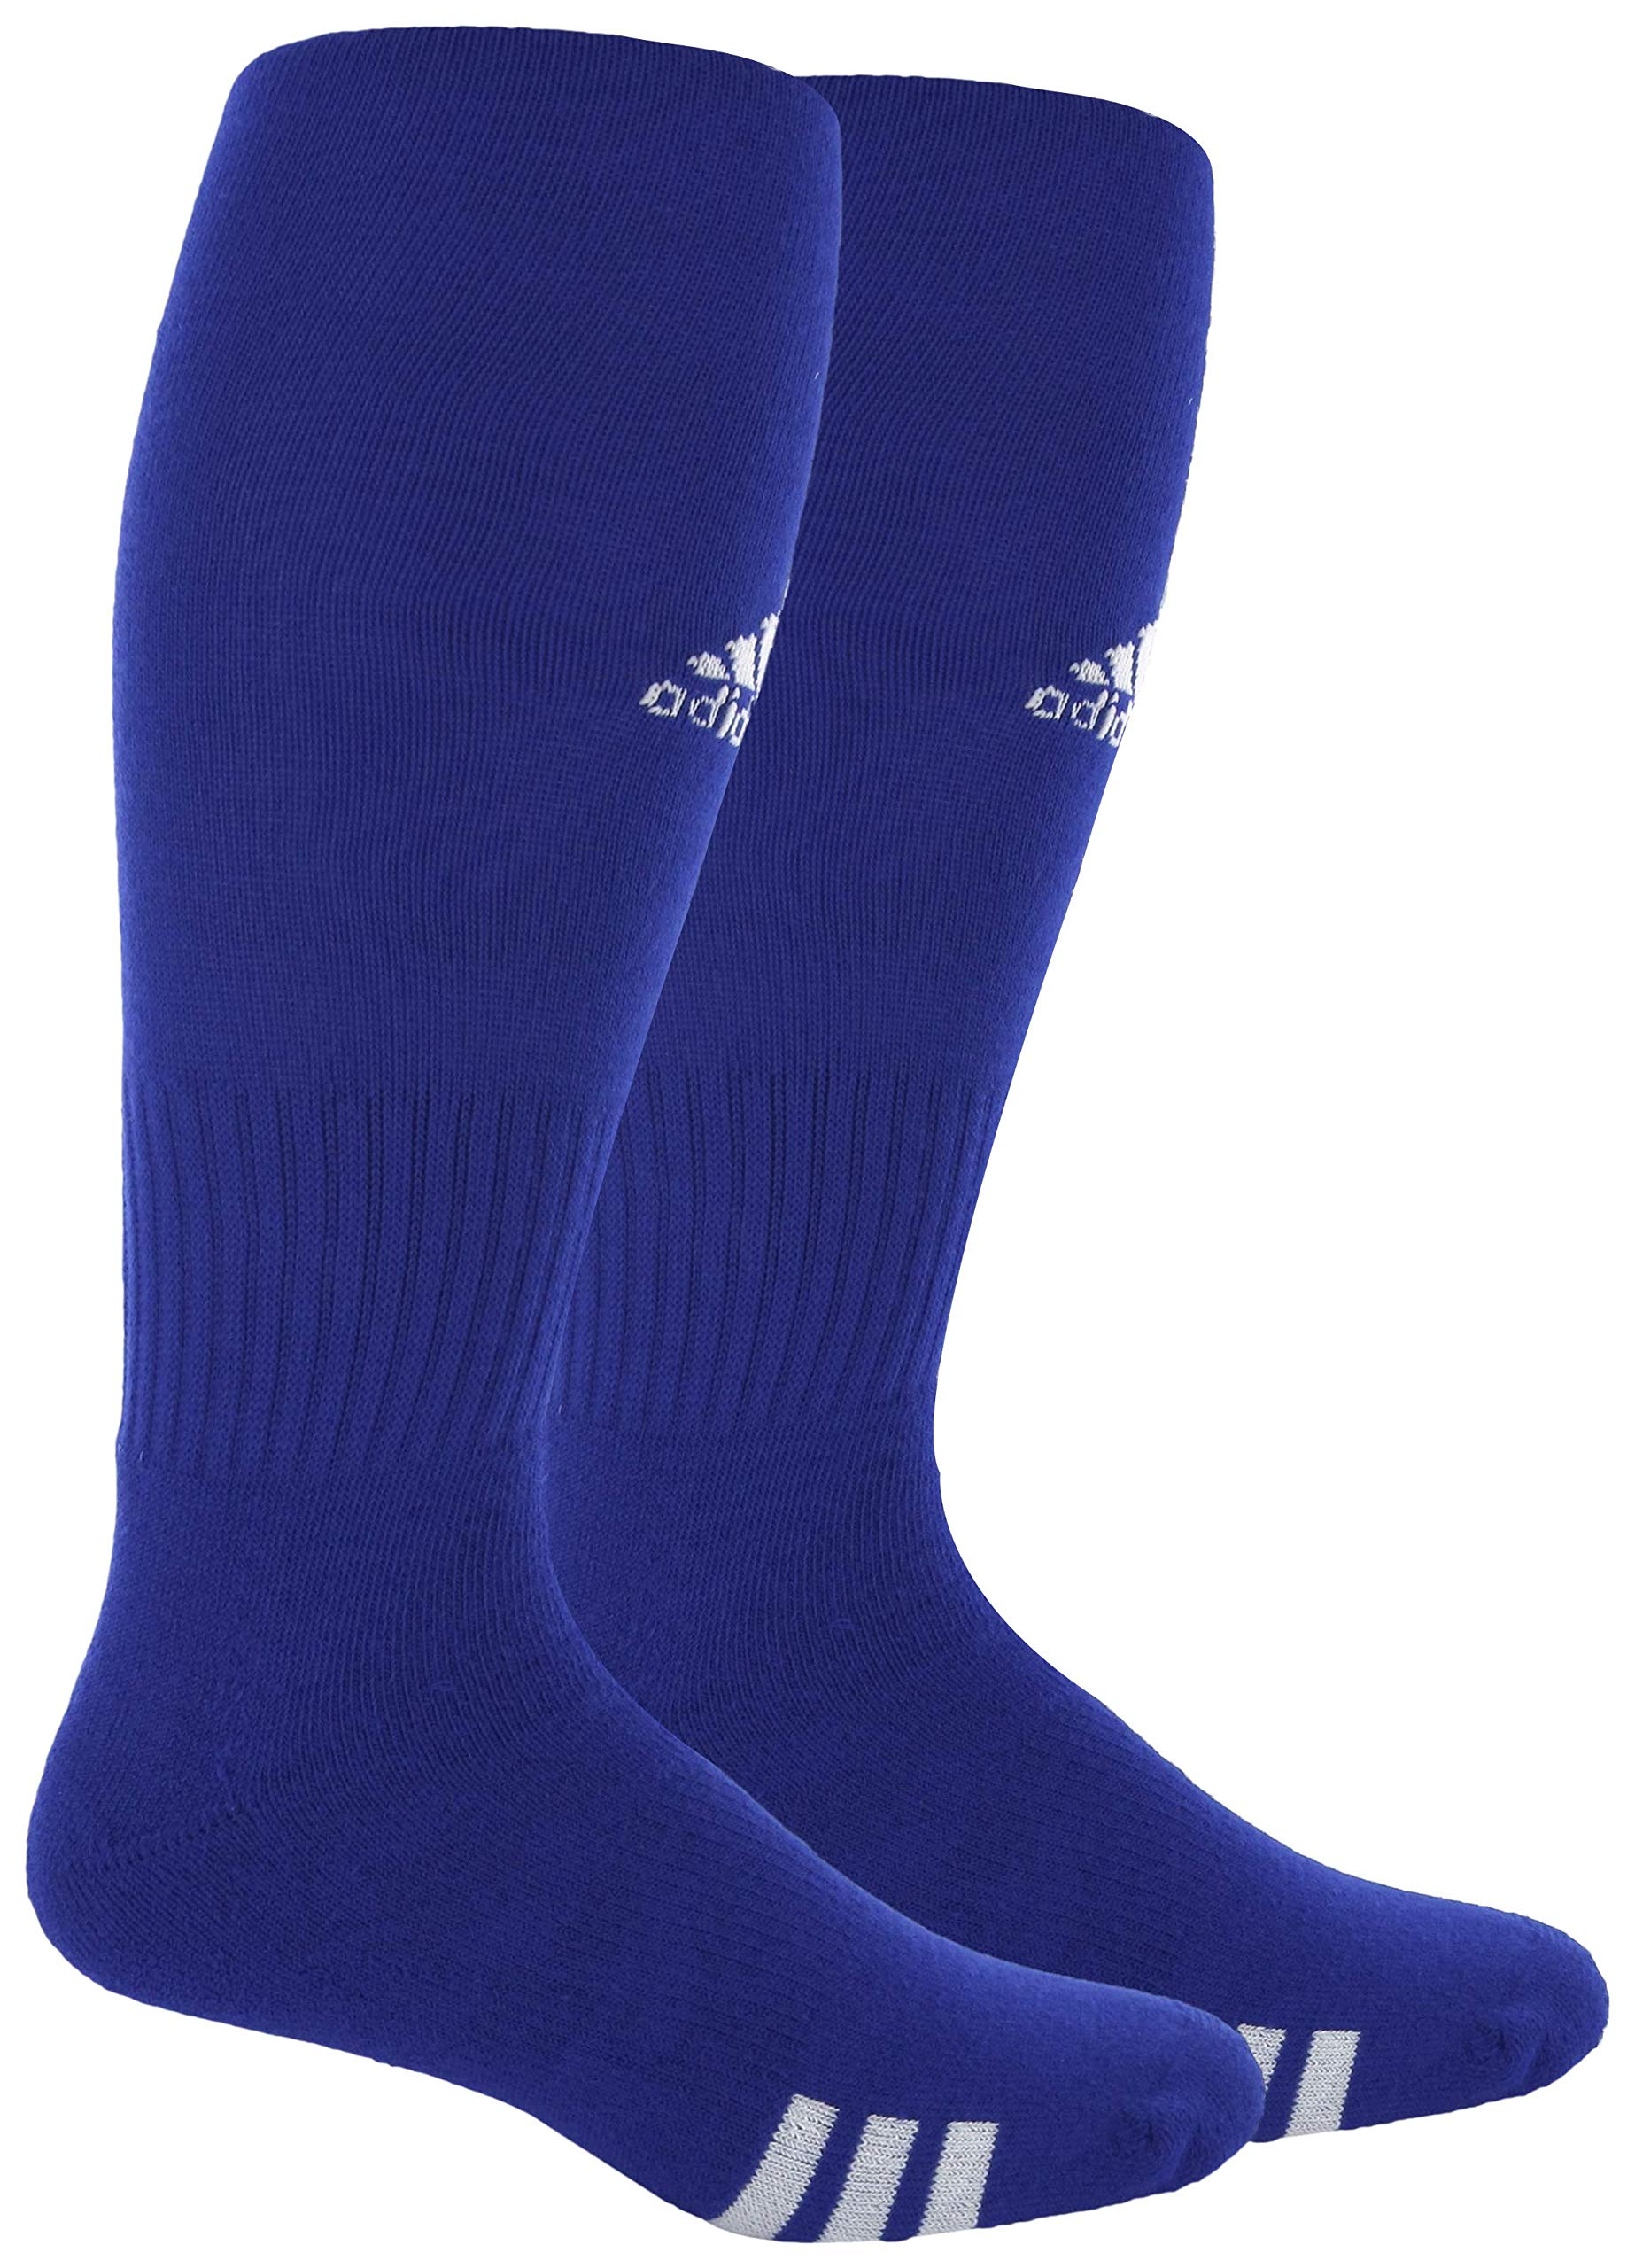 adidas Unisex Rivalry Field OTC Sock (2-Pair), Cobalt/White, 9-13 by adidas